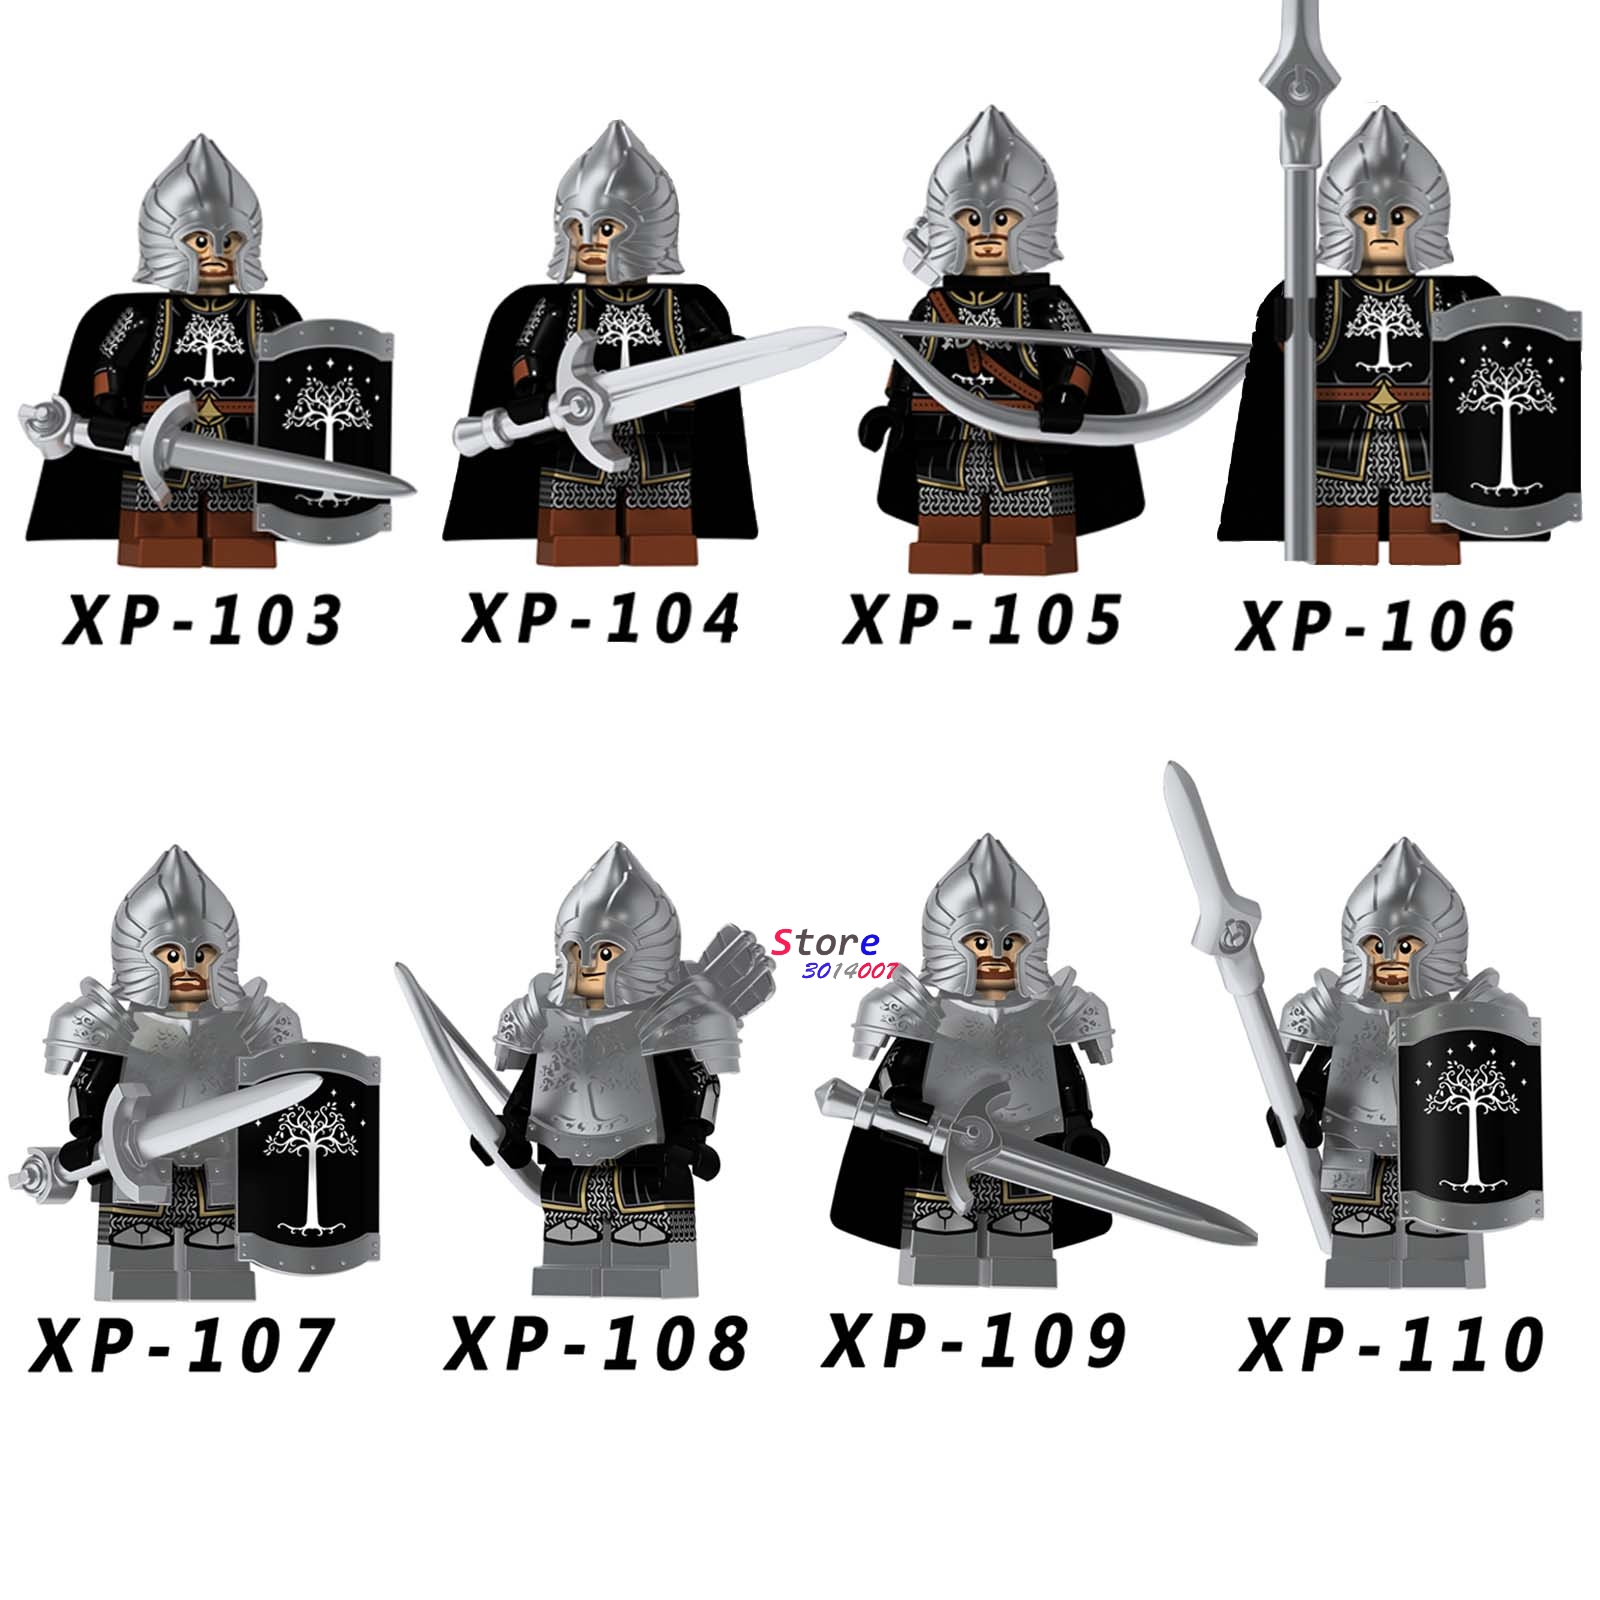 50pcs Medieval Knight Lord of the Rings of Gondor Spear Archer Sword Building Blocks children toys